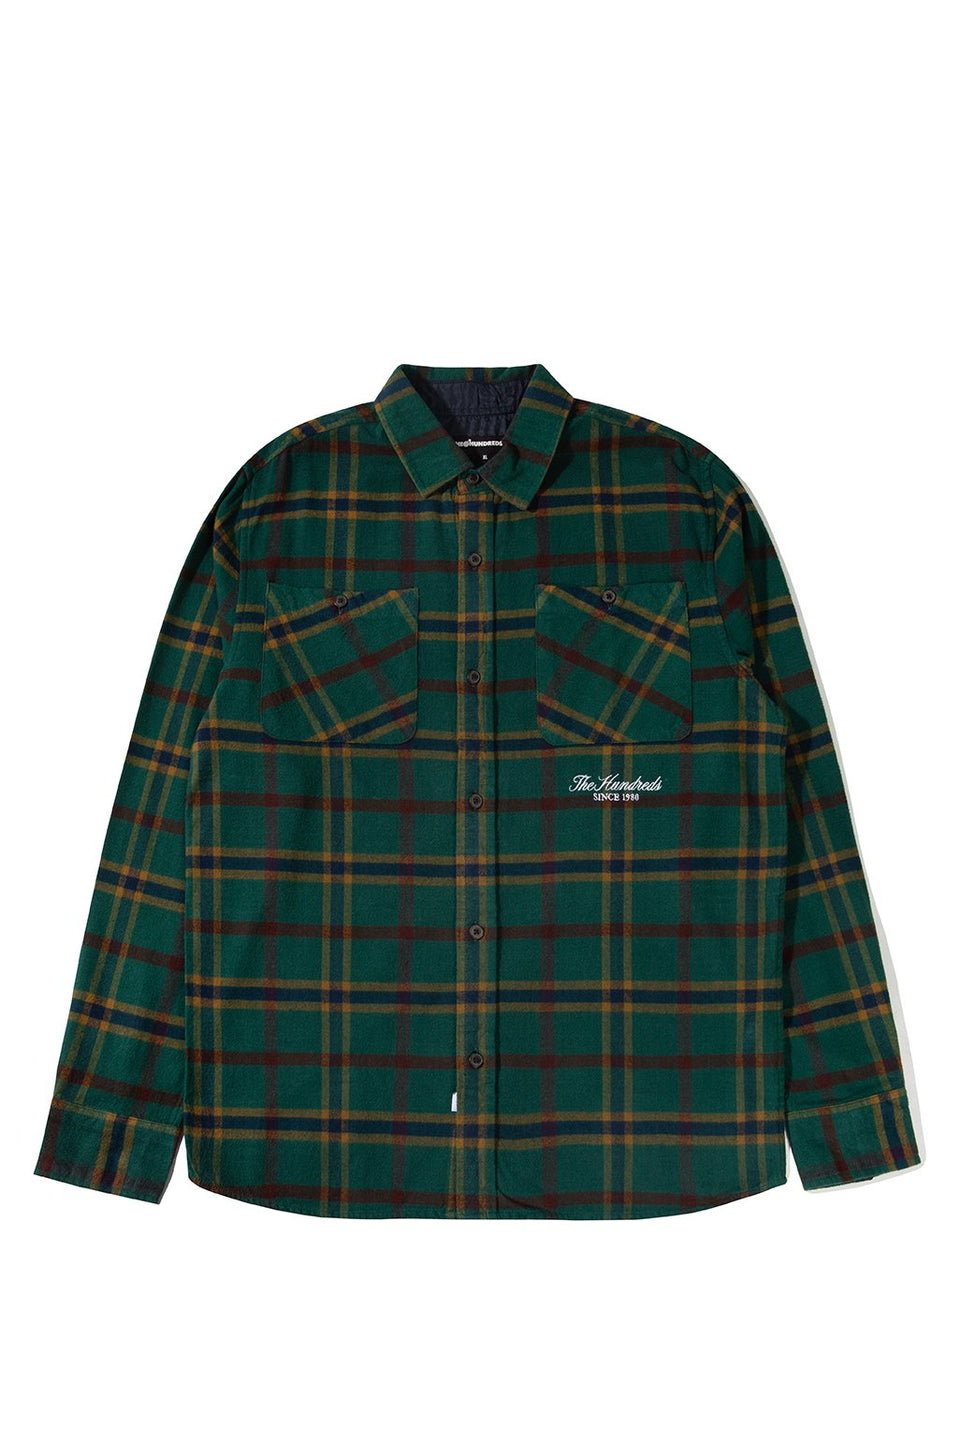 The Hundreds Hill Button-Up TOPS Hunter Green